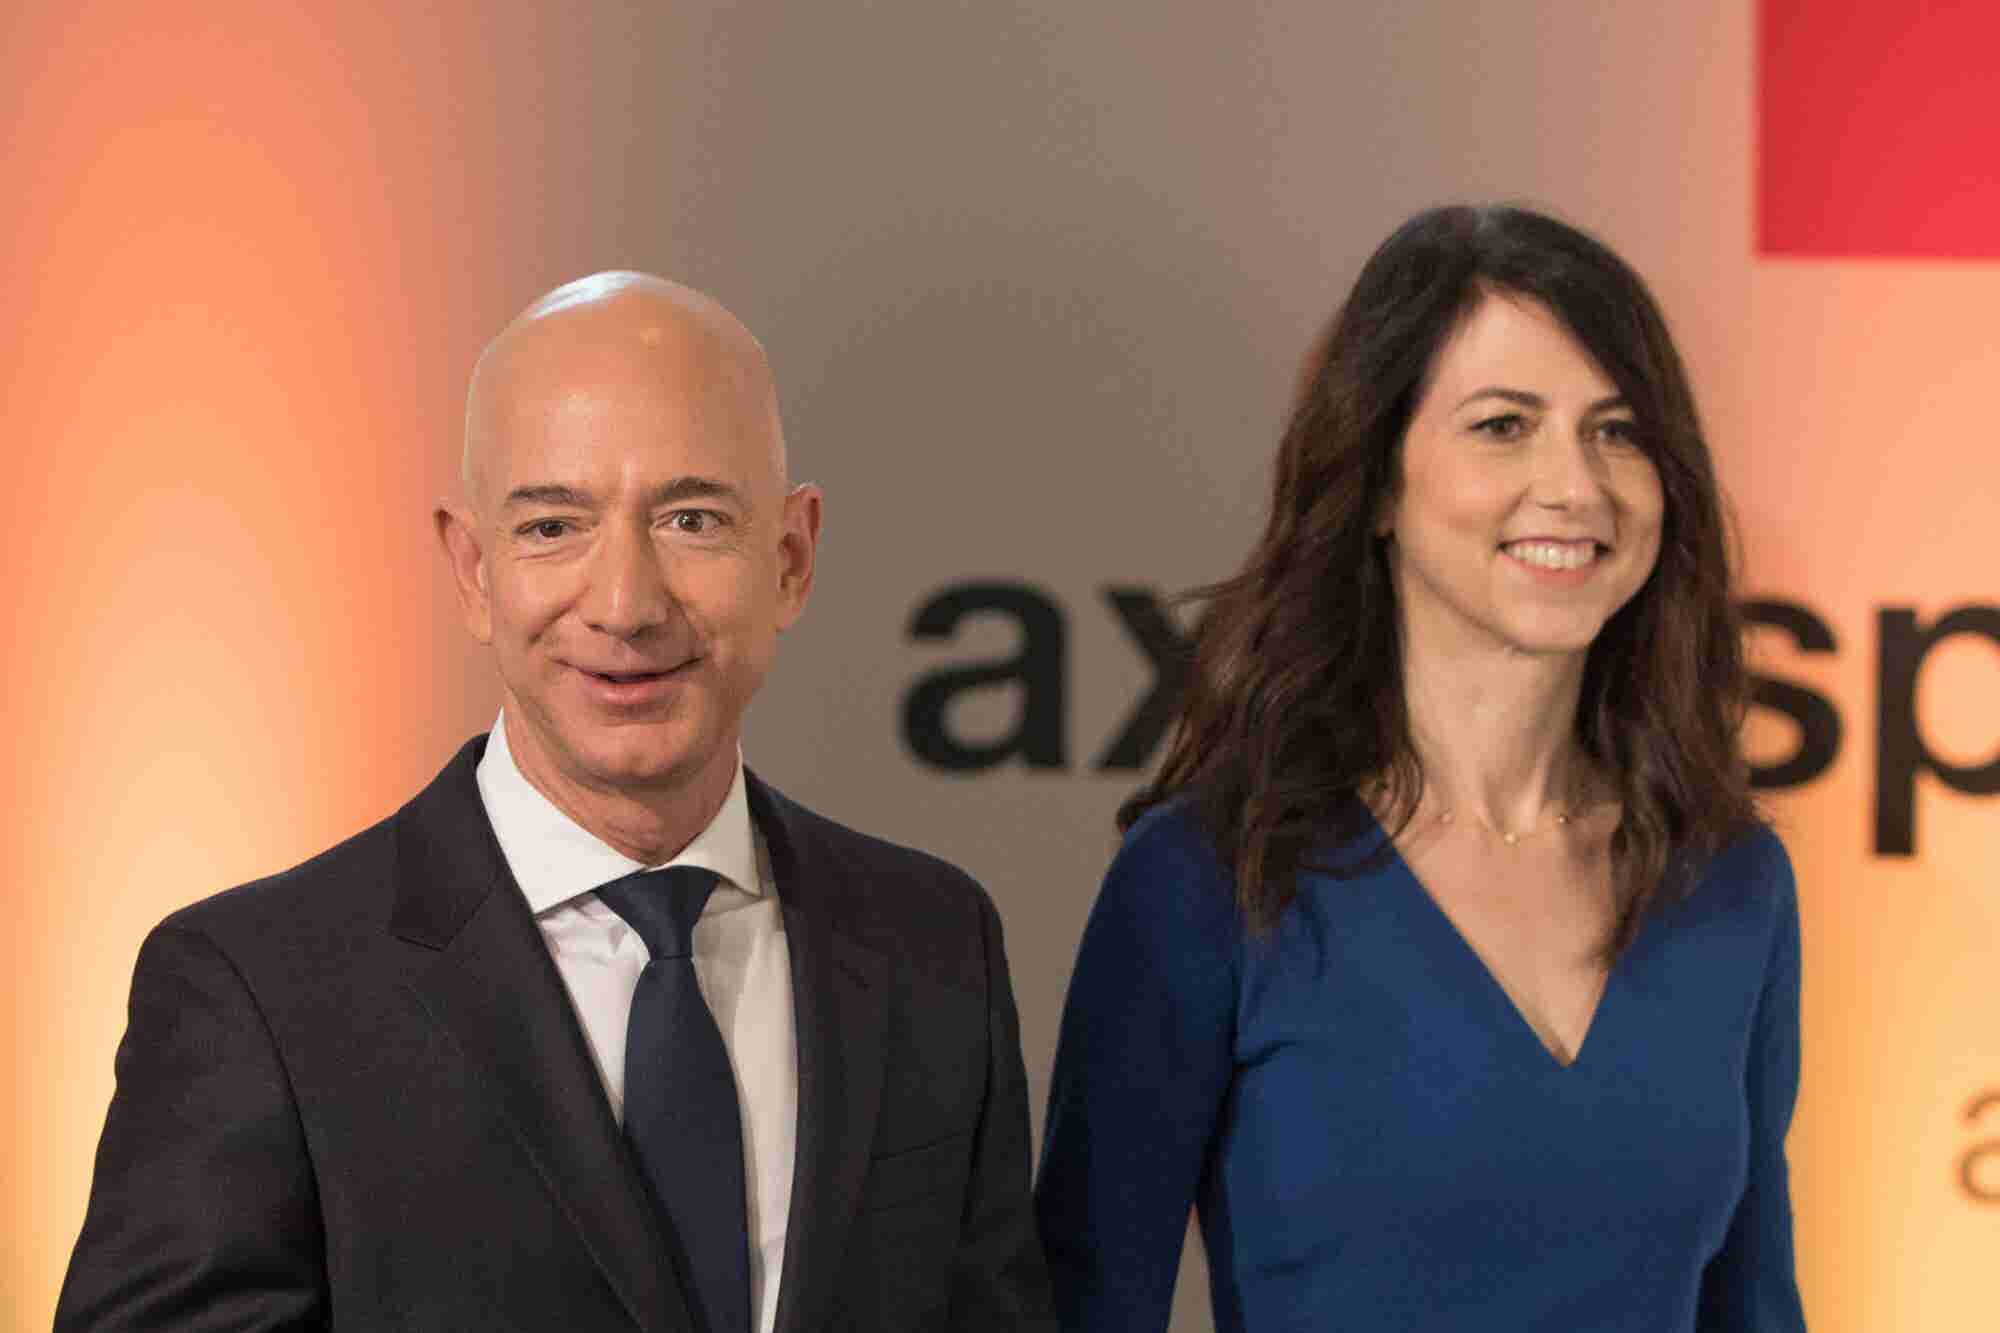 Jeff Bezos Remains the Wealthiest Man and Mackenzie Bezos Becomes the Third Wealthiest Woman in the World After Finalizing Divorce